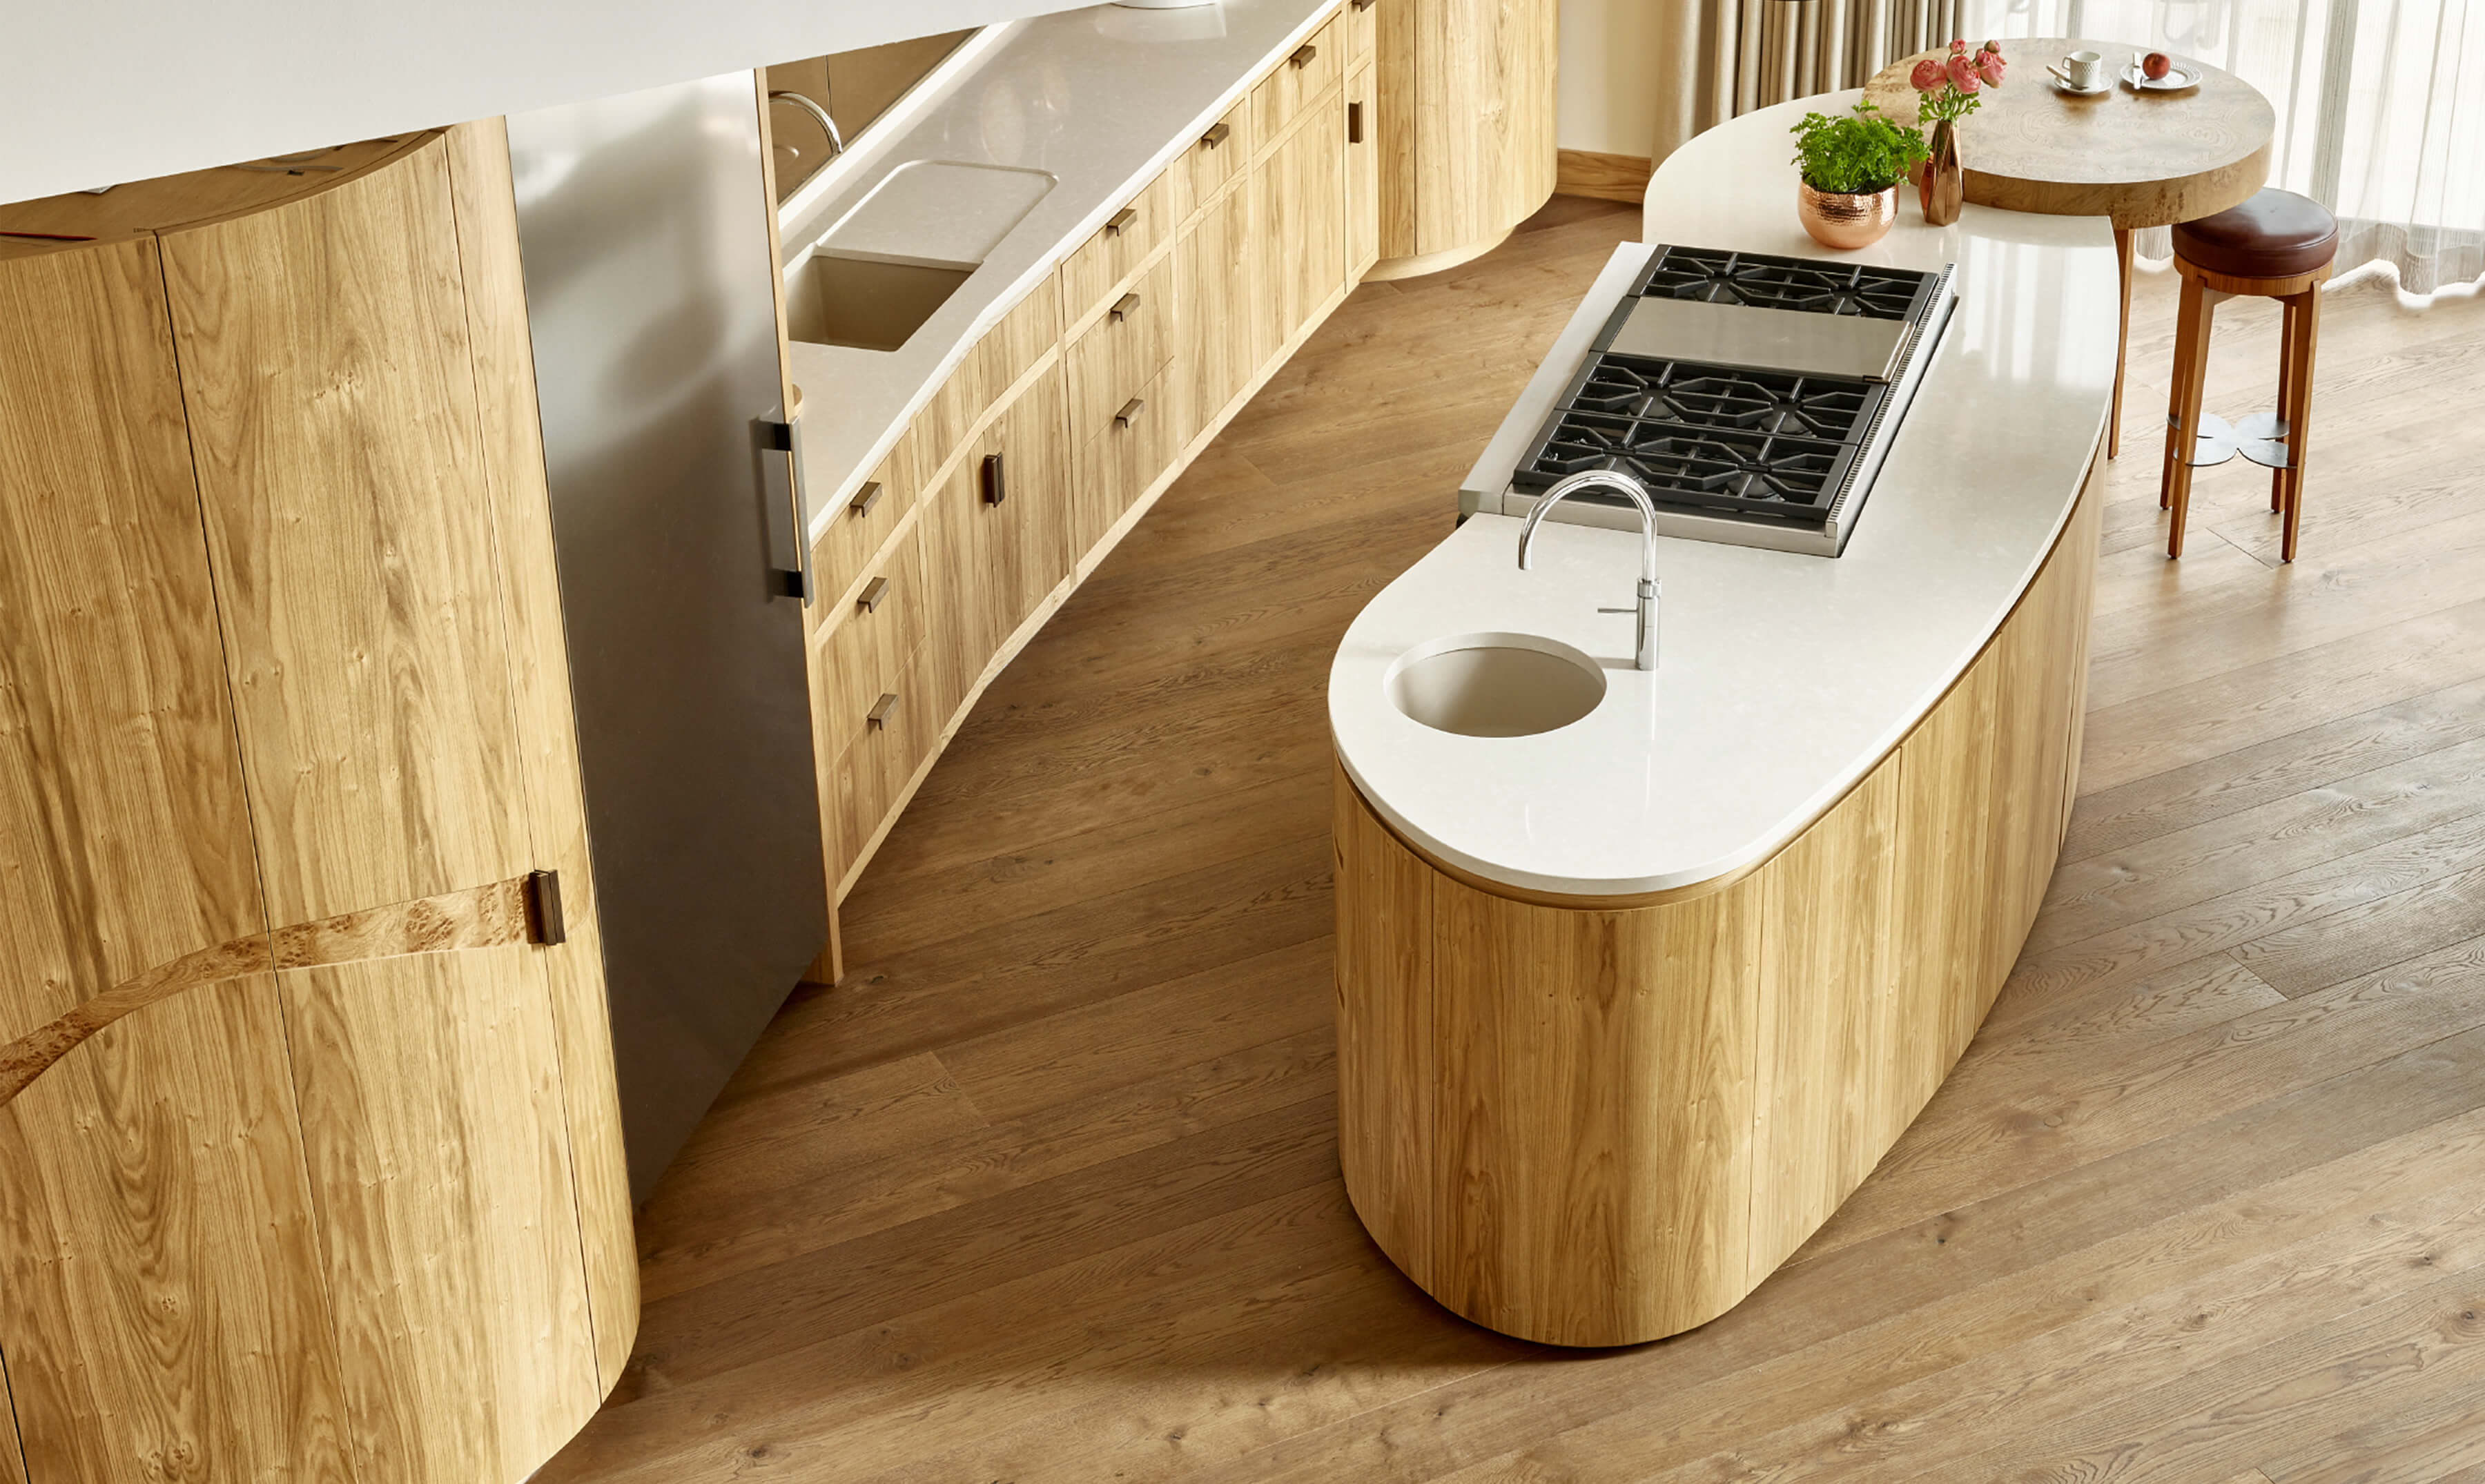 View of oak kitchen from above, with organic shaped kitchen island